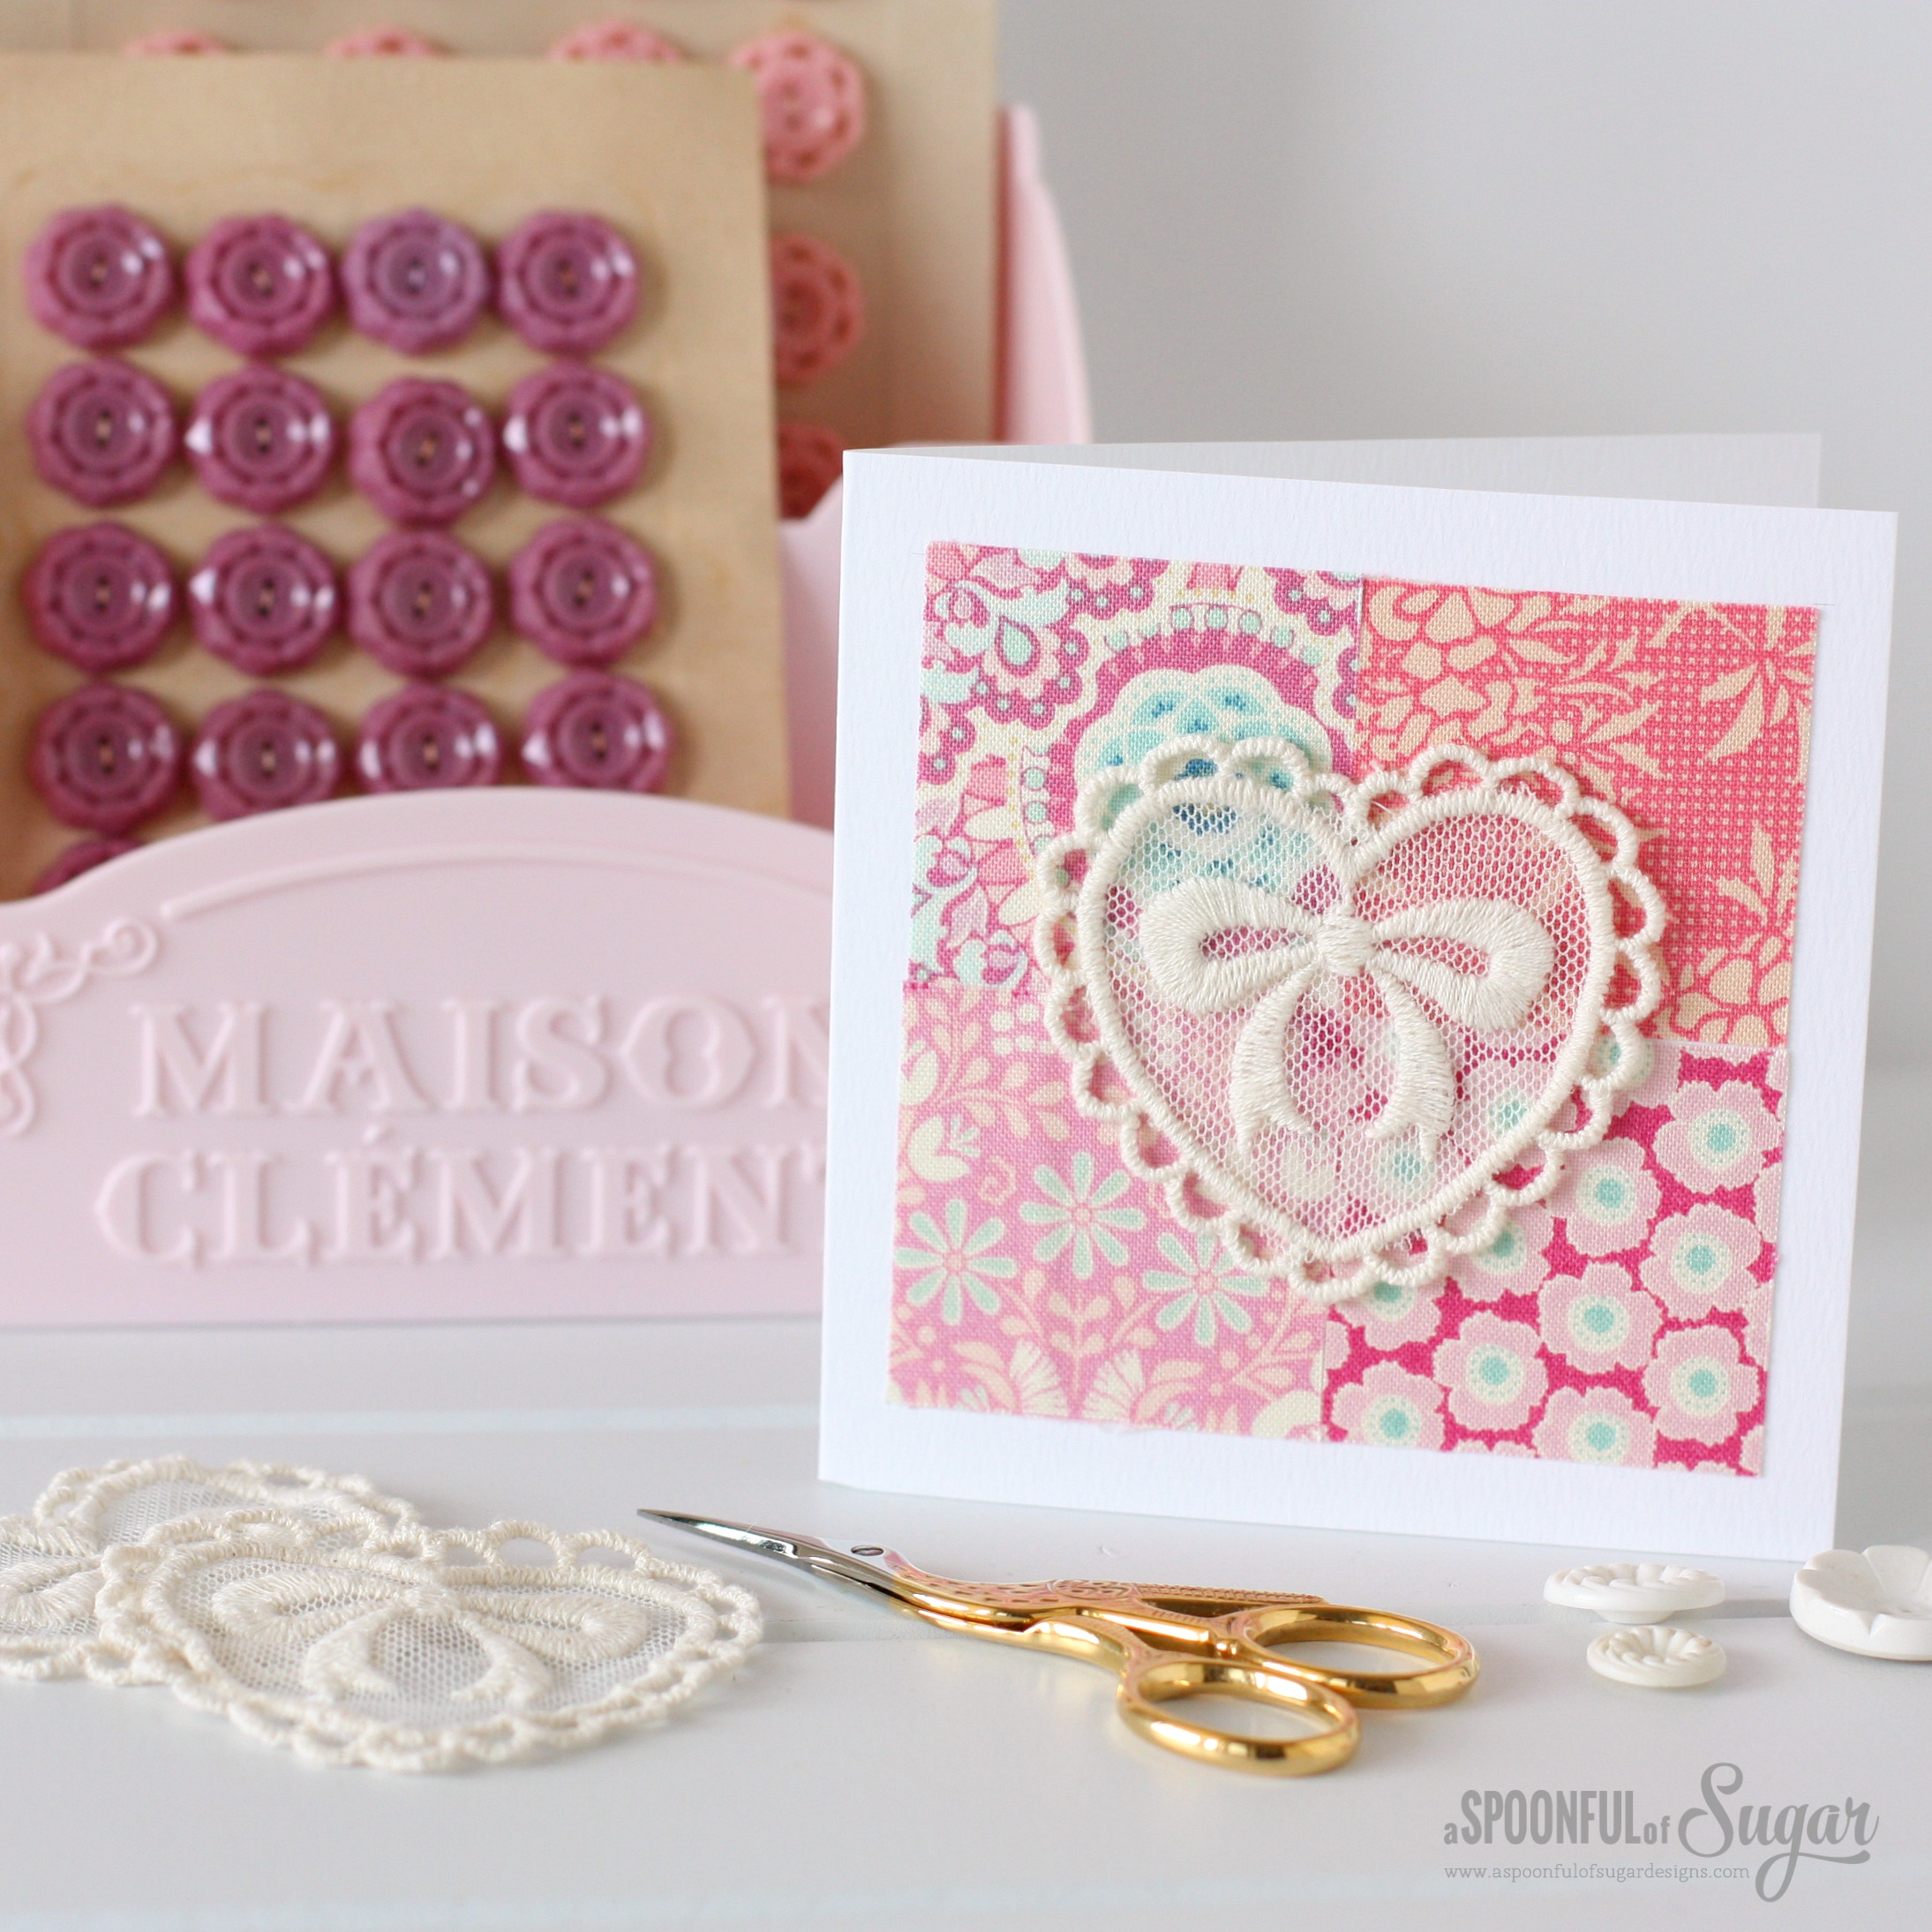 Happy Scrappy Cards - make sweet cards using your fabric scraps and lace motifs.